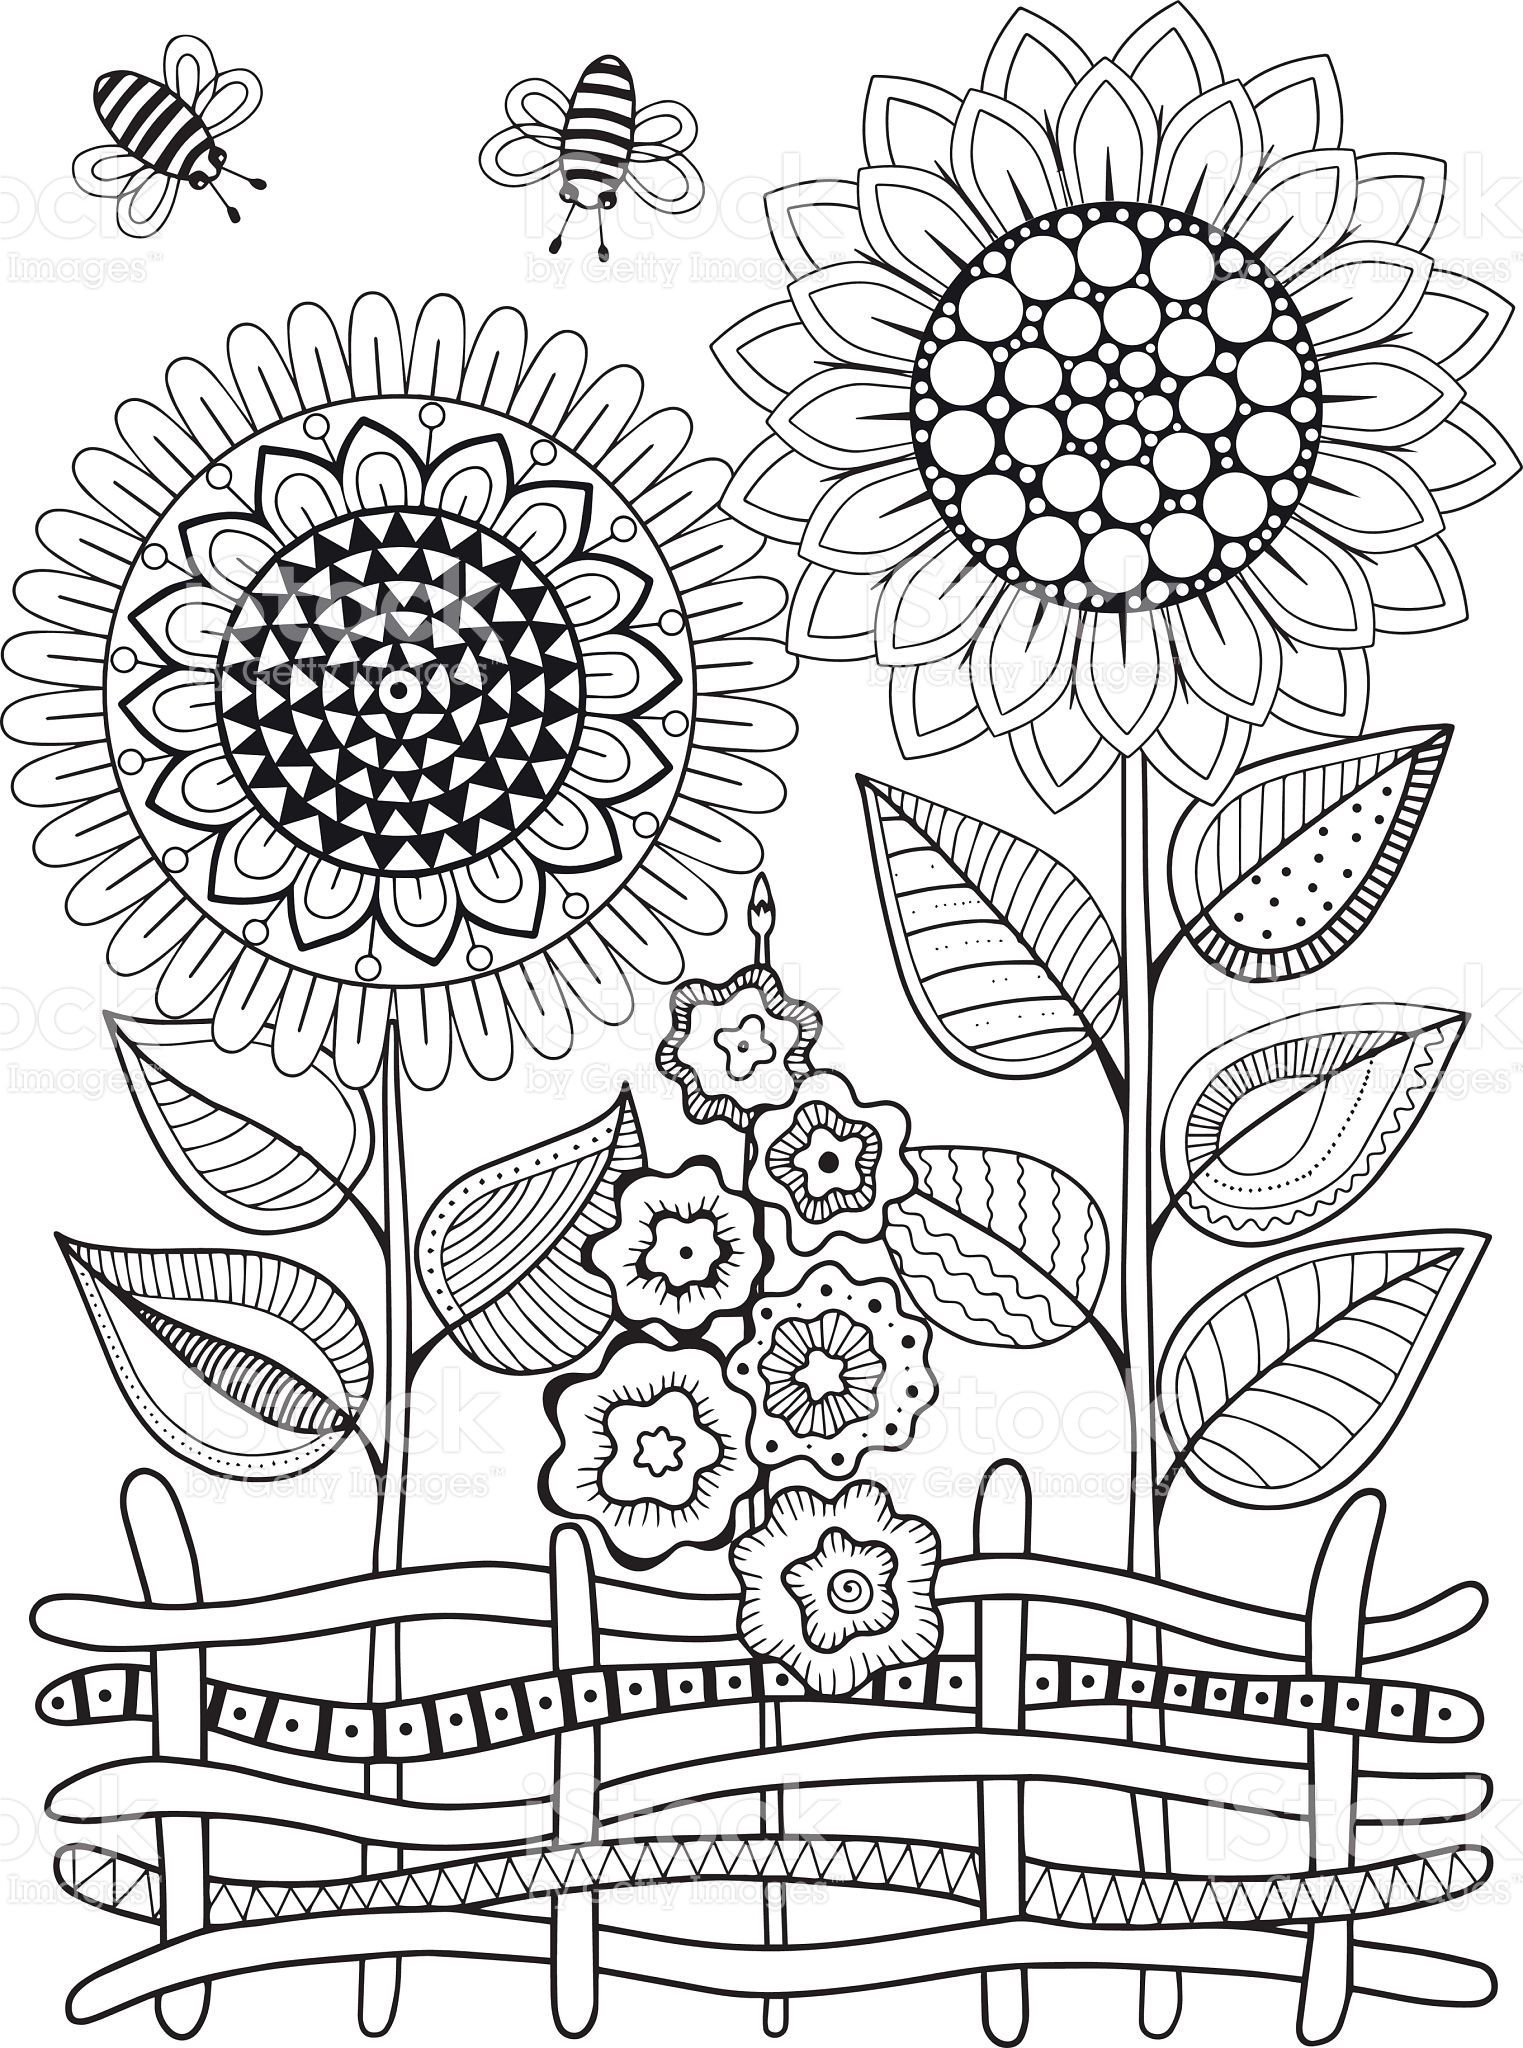 Vector Doodle Sunflowers Coloring Book For Adult Summer Flowers